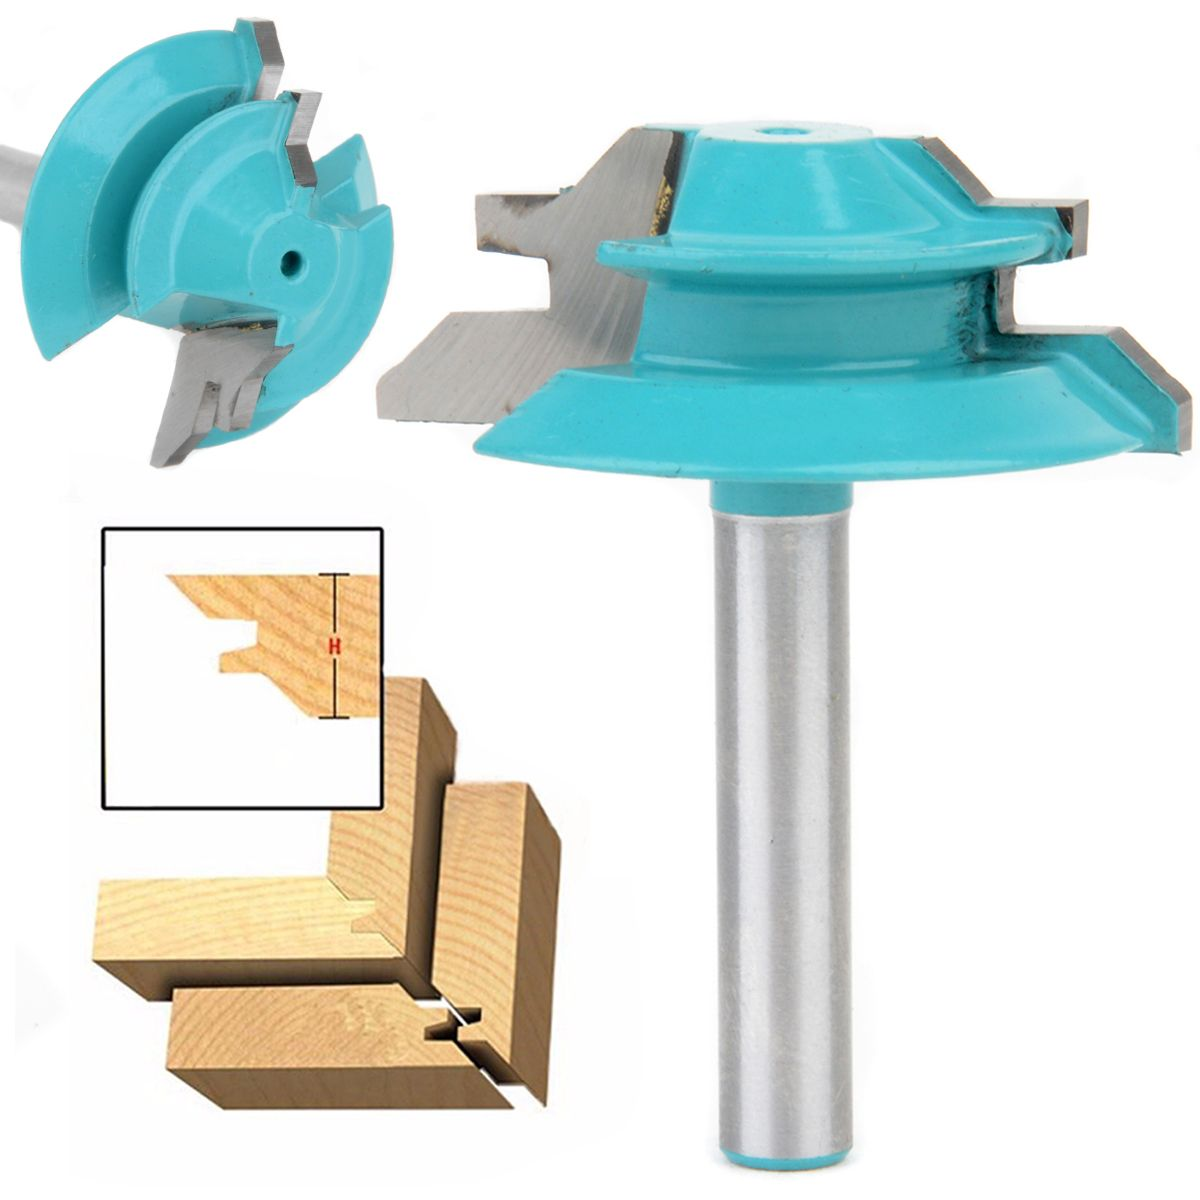 45 Degree Lock Miter Router Bit 1-1/2